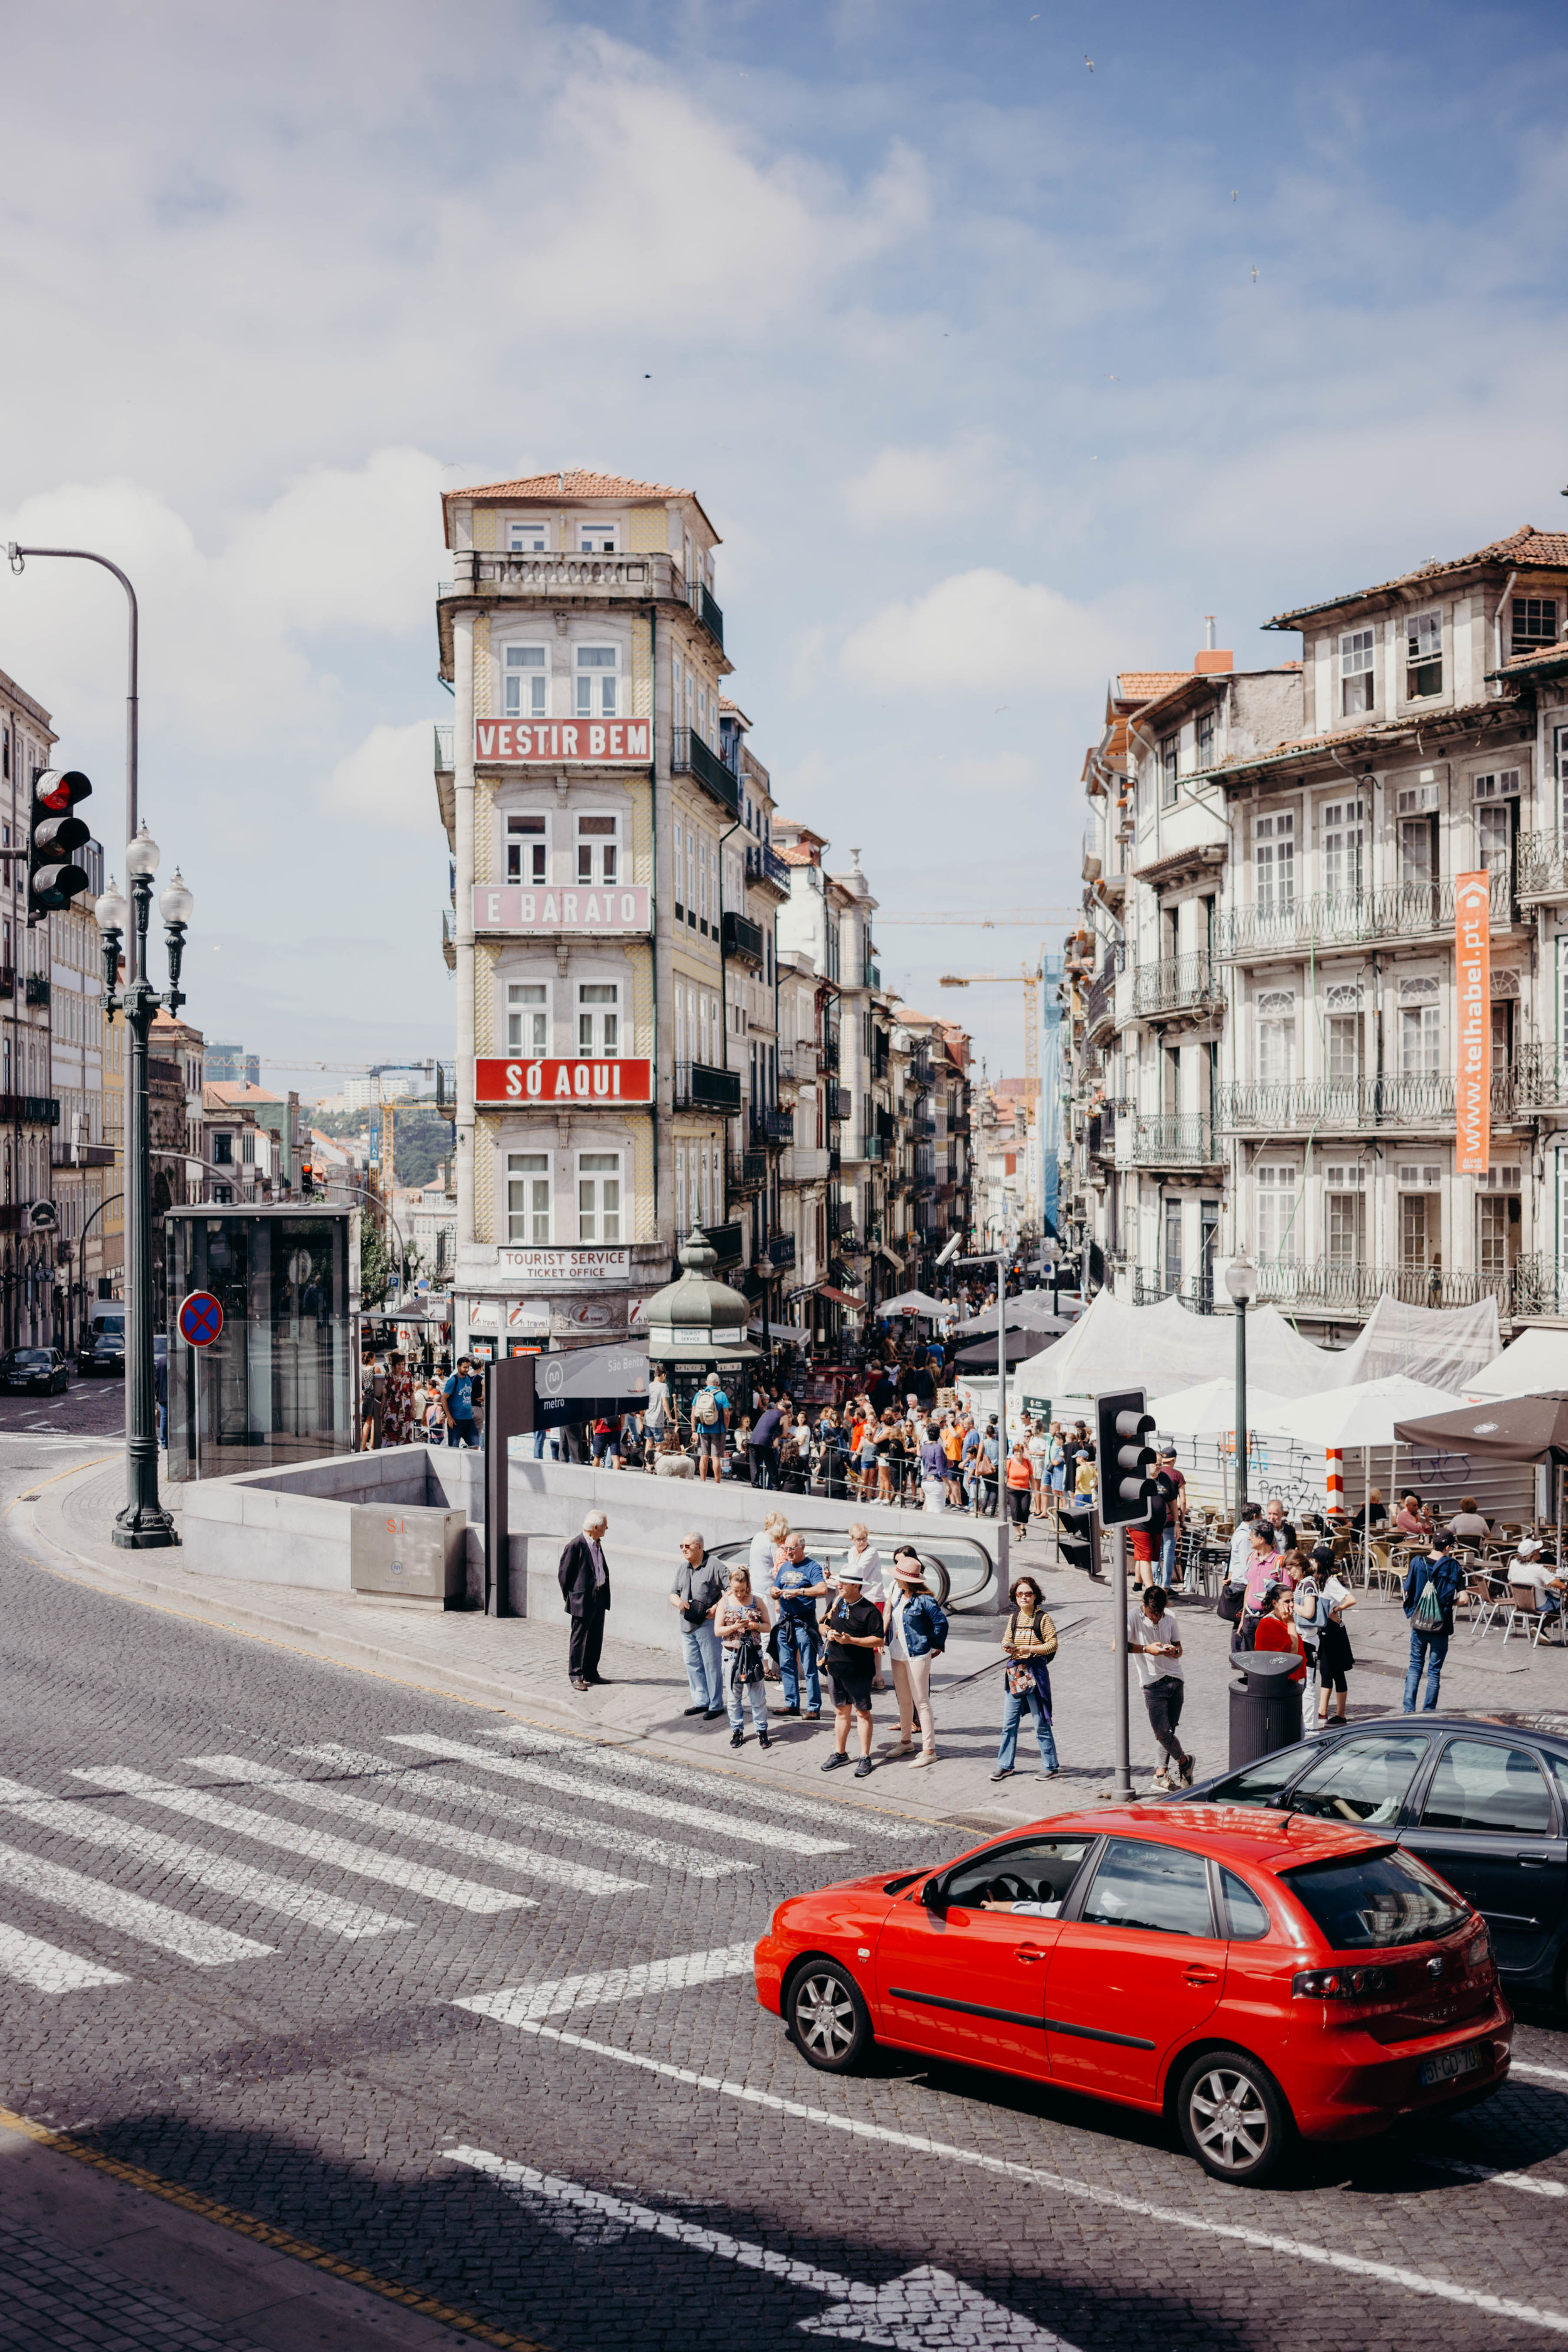 Our Portugal Travel Diary: Lisbon, Porto, and More | On the Street Where We Live (aretherelilactrees.com)  Sao Bento Station